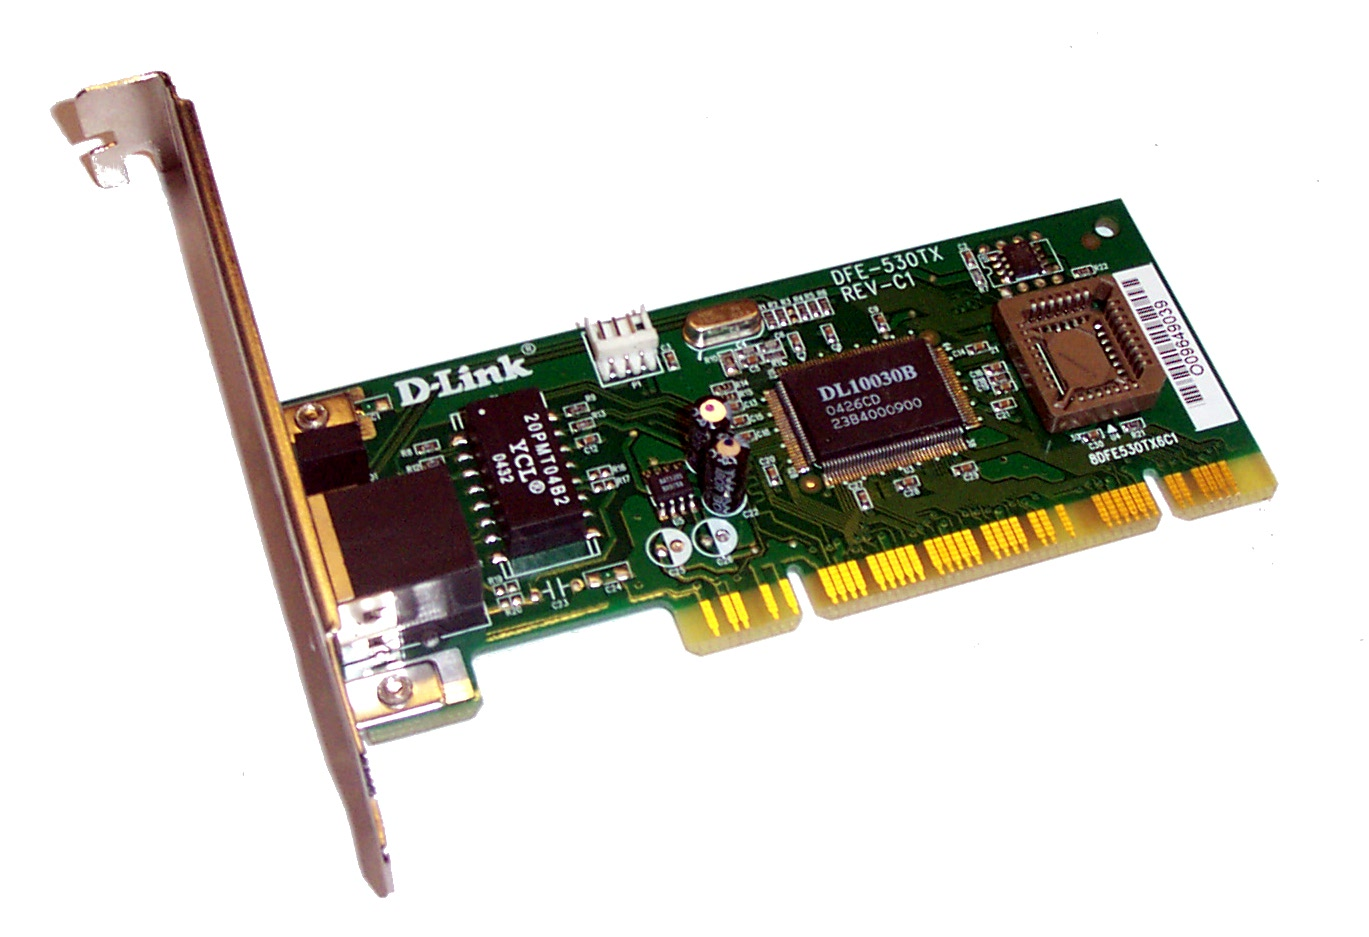 D-LINK DL10030B NETWORK CARD DRIVERS FOR WINDOWS 7